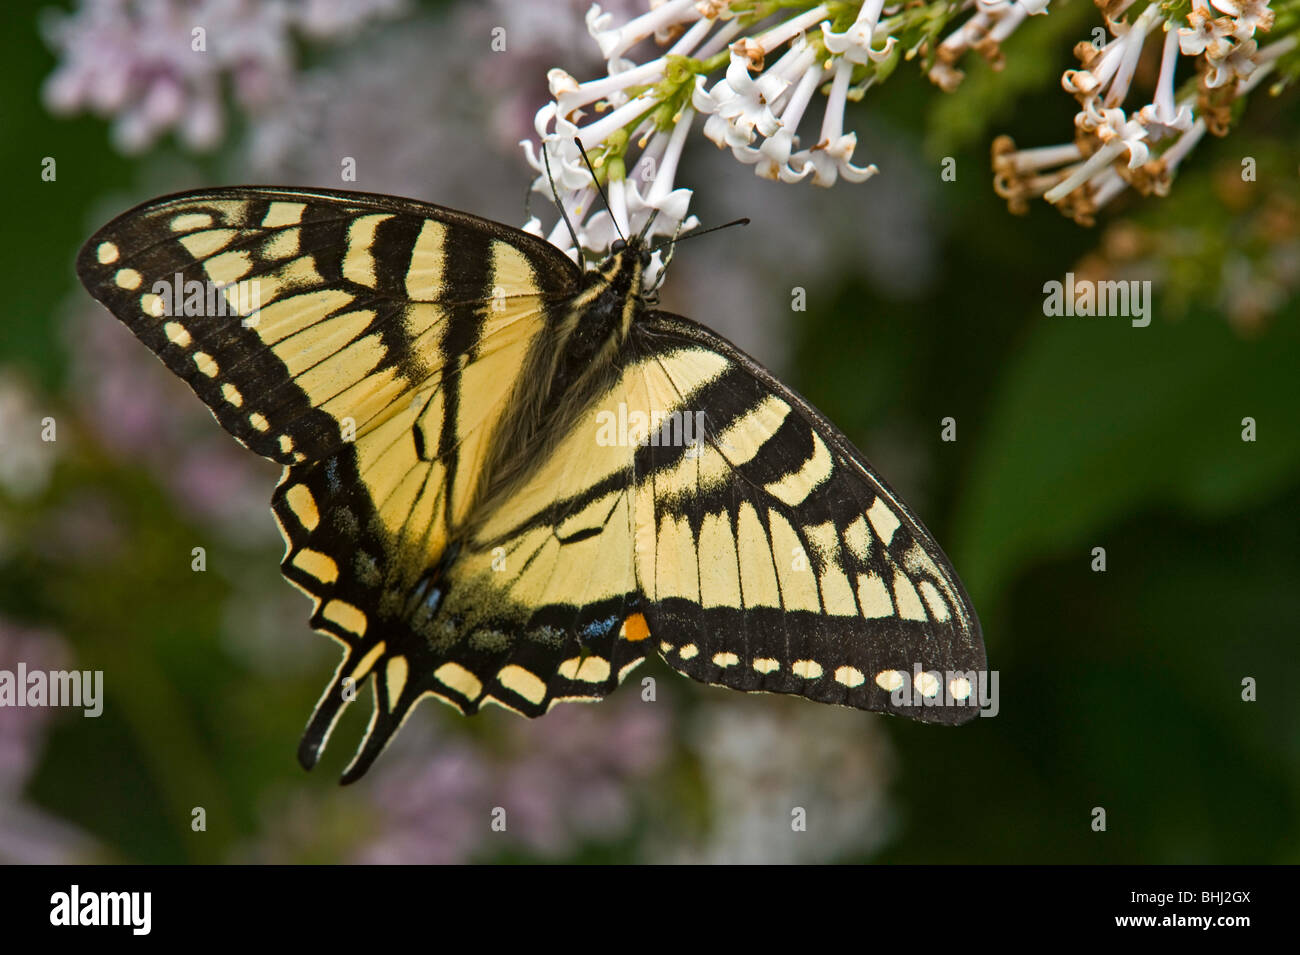 Canadian tiger swallowtail (Papilio canadensis) Nectaring on lilac bush - Stock Image